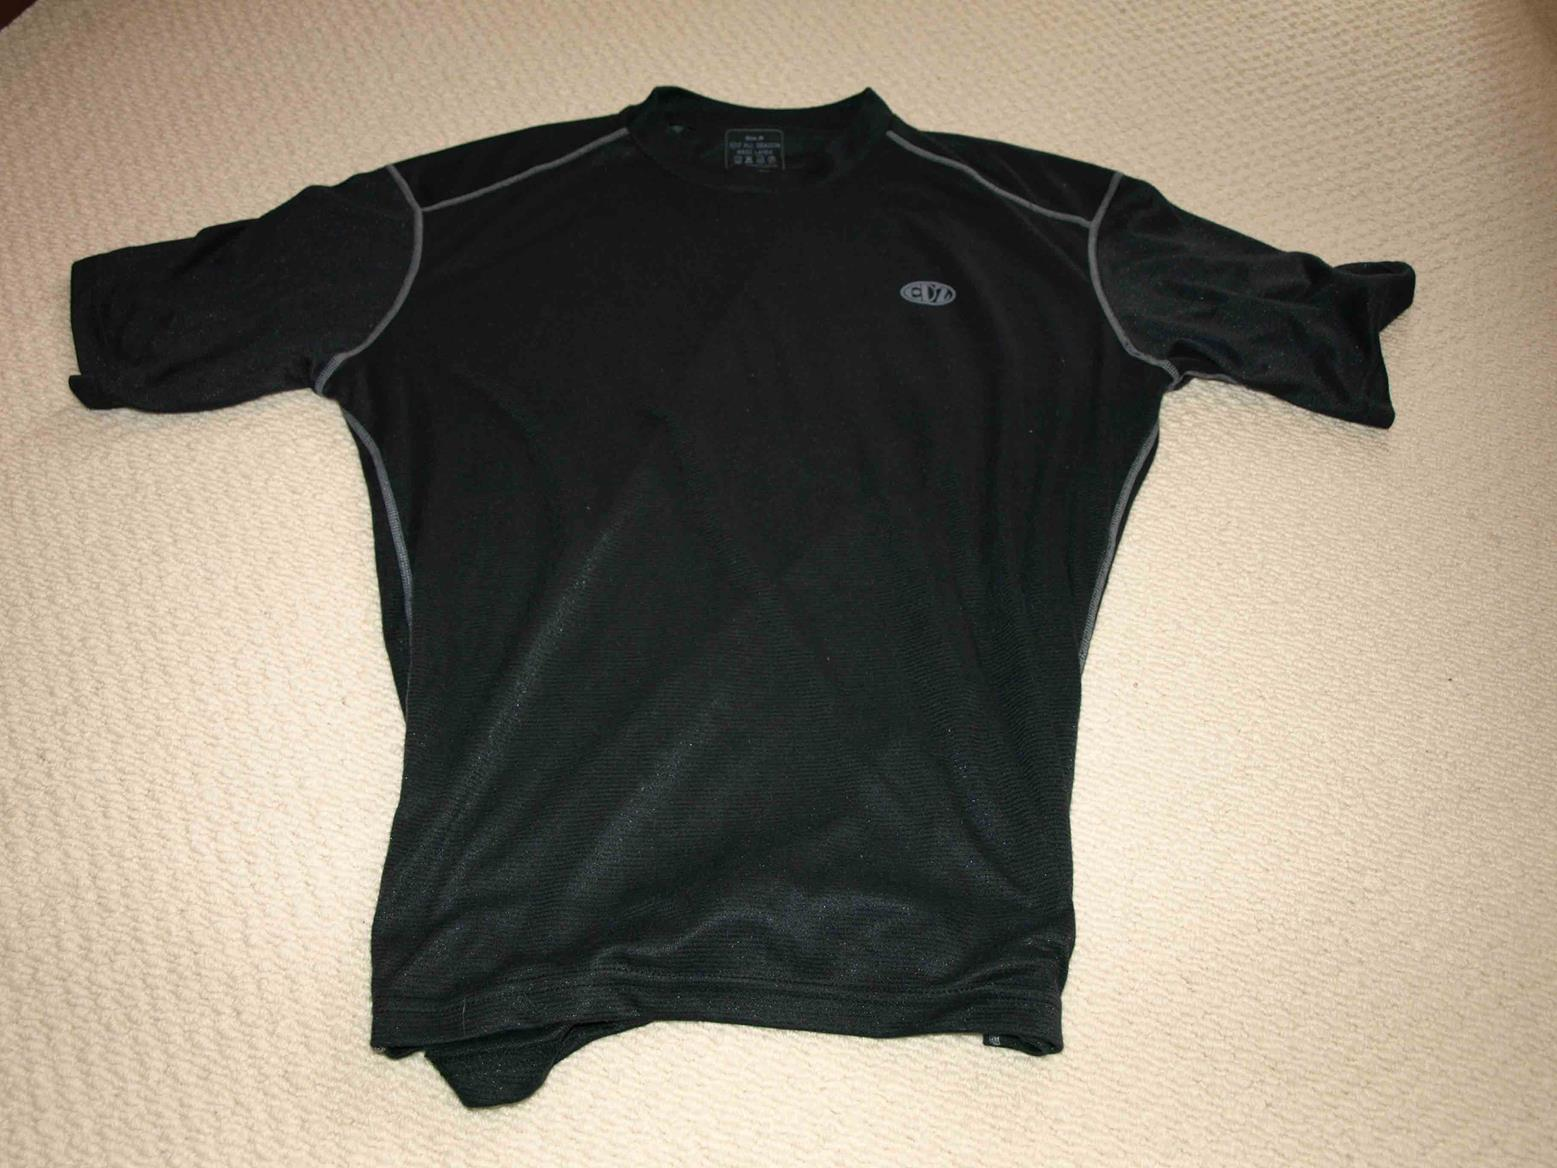 849b67963c494 Kit review  EDZ All Season Base Layer